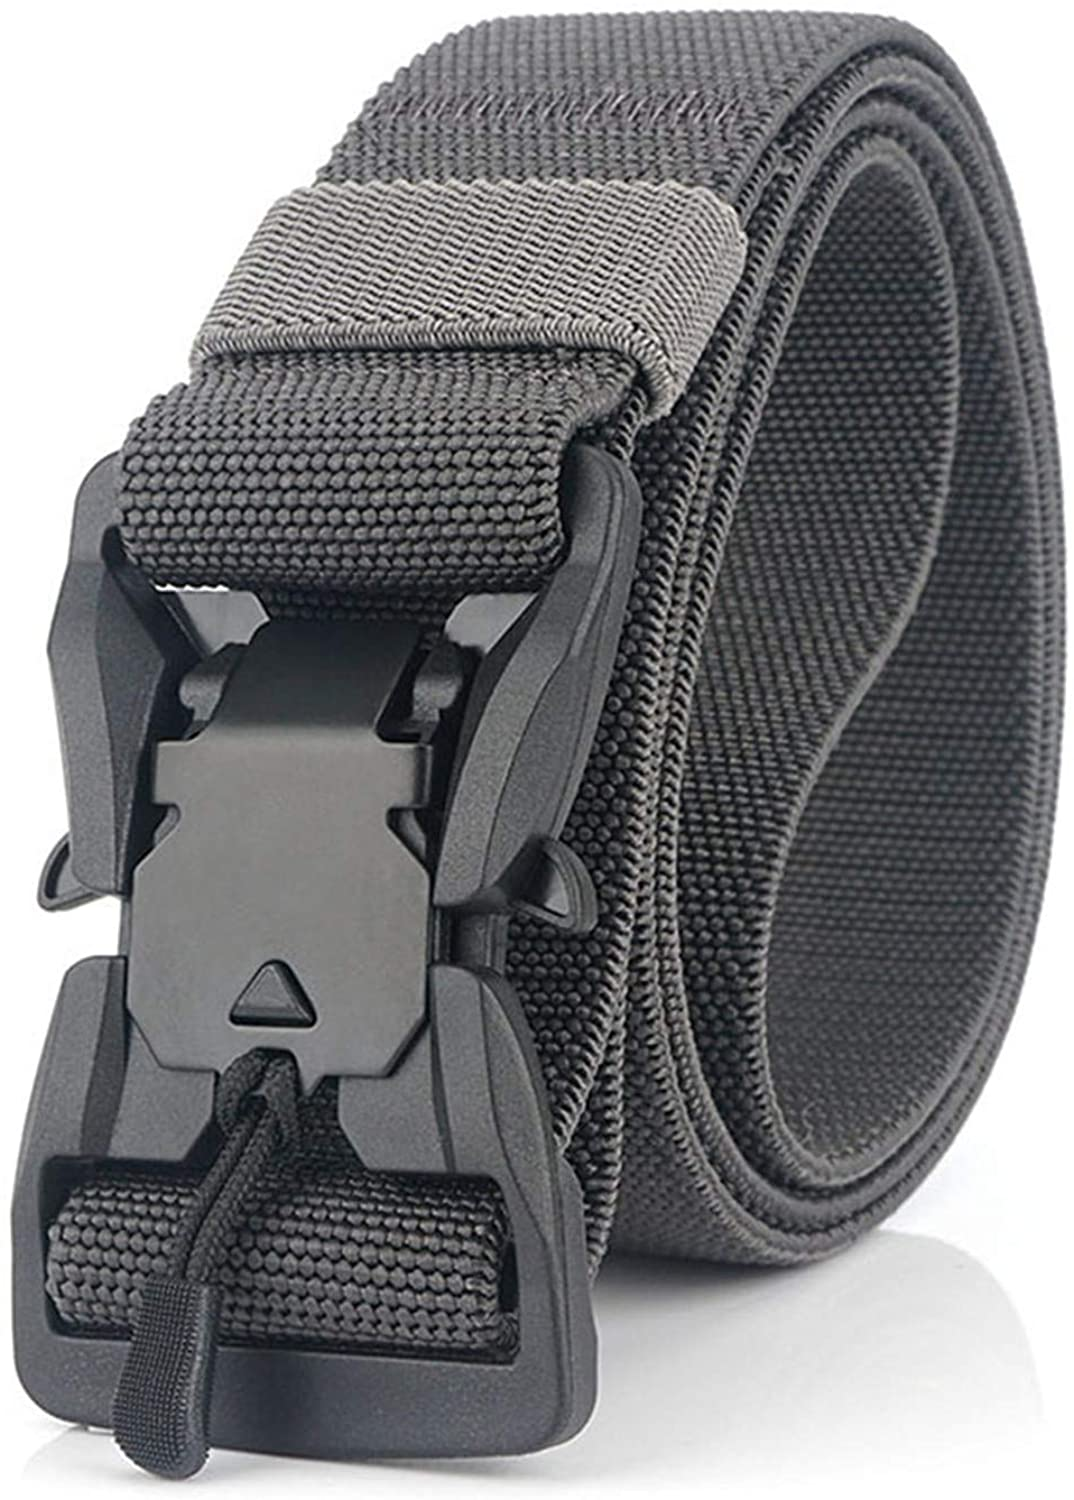 Soluo Tactical Rigger Belt, Military Style 1.5 Inch Utility Nylon Webbing Belt Quick-Release Buckle Belt